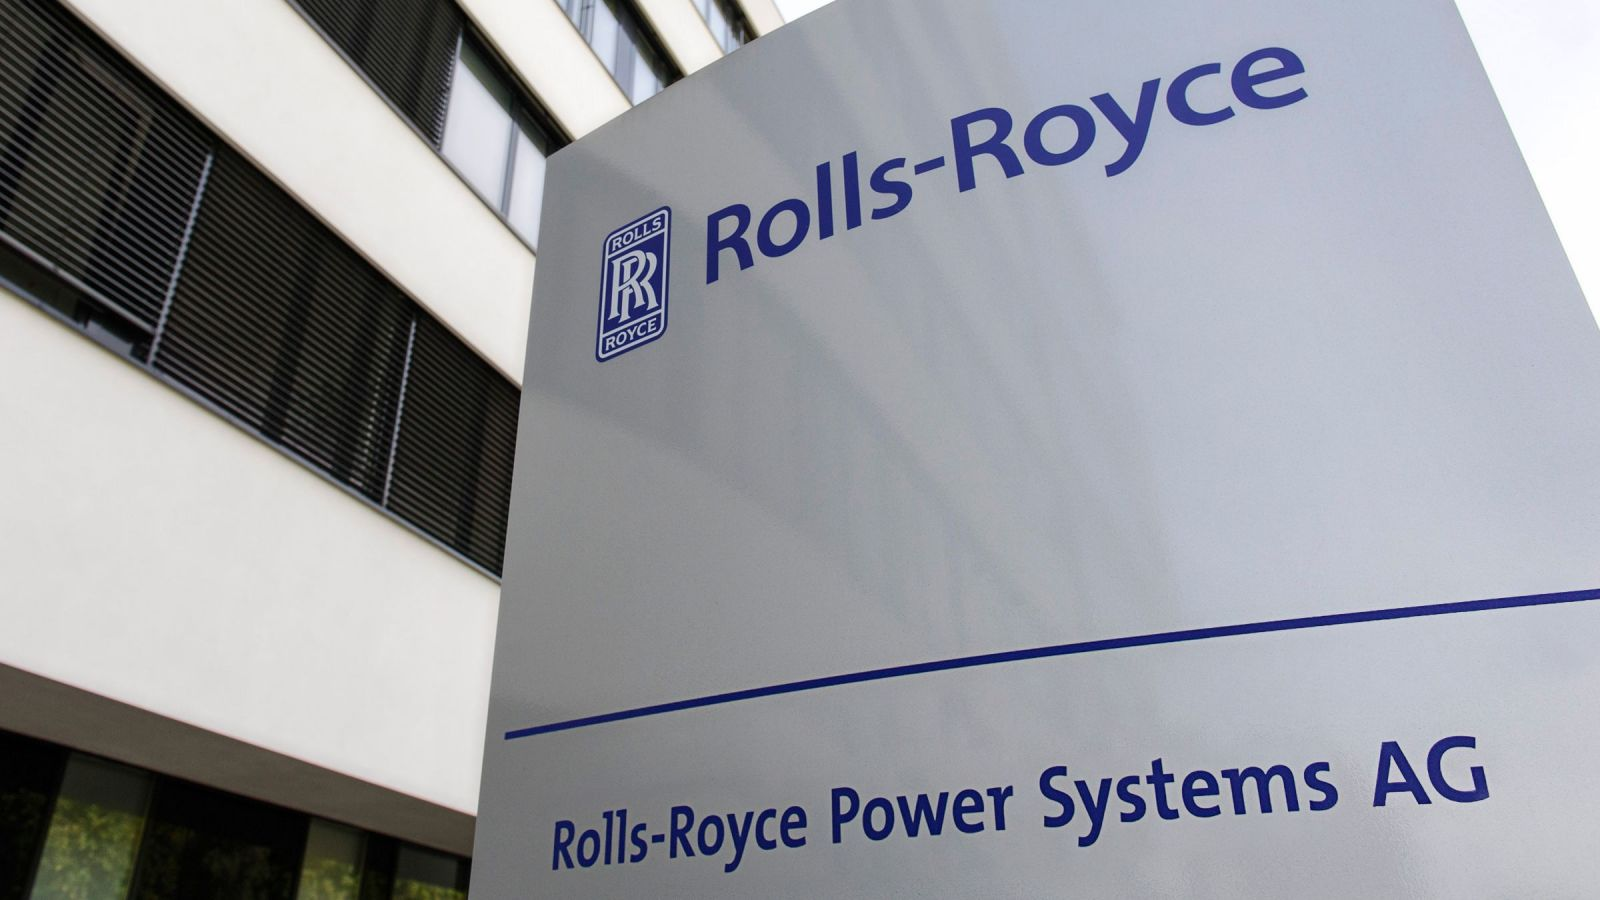 rolls-royce headquarters